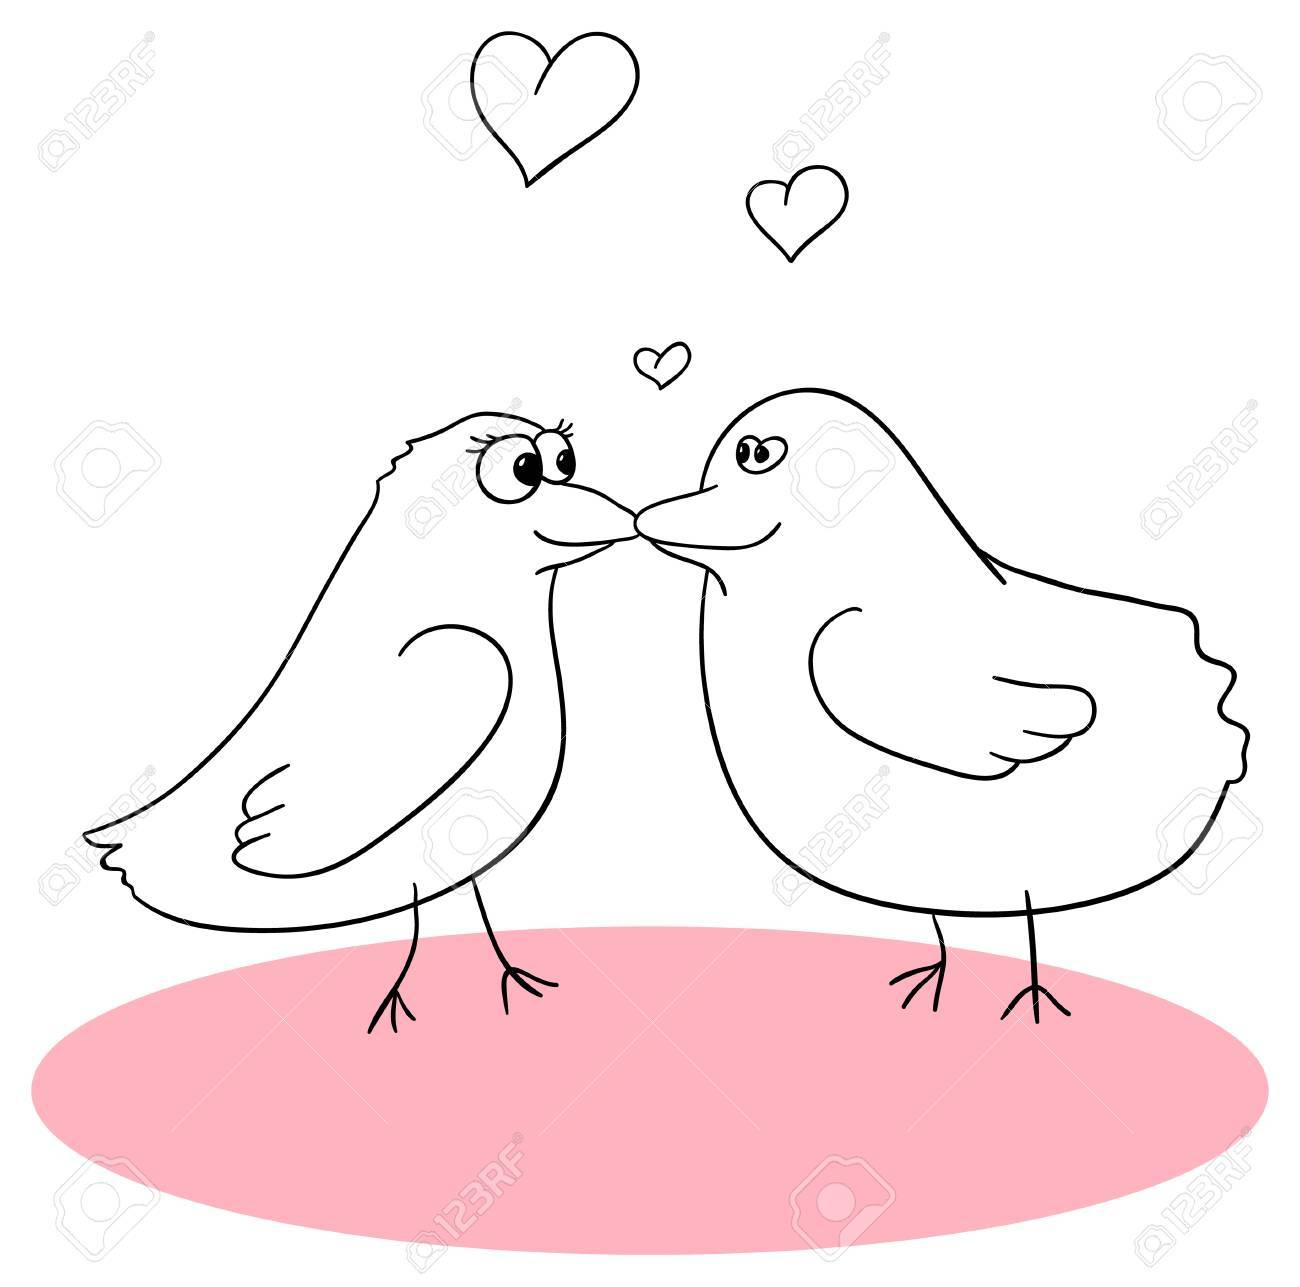 kissing birds is isolated on a white background Stock Vector - 14039536